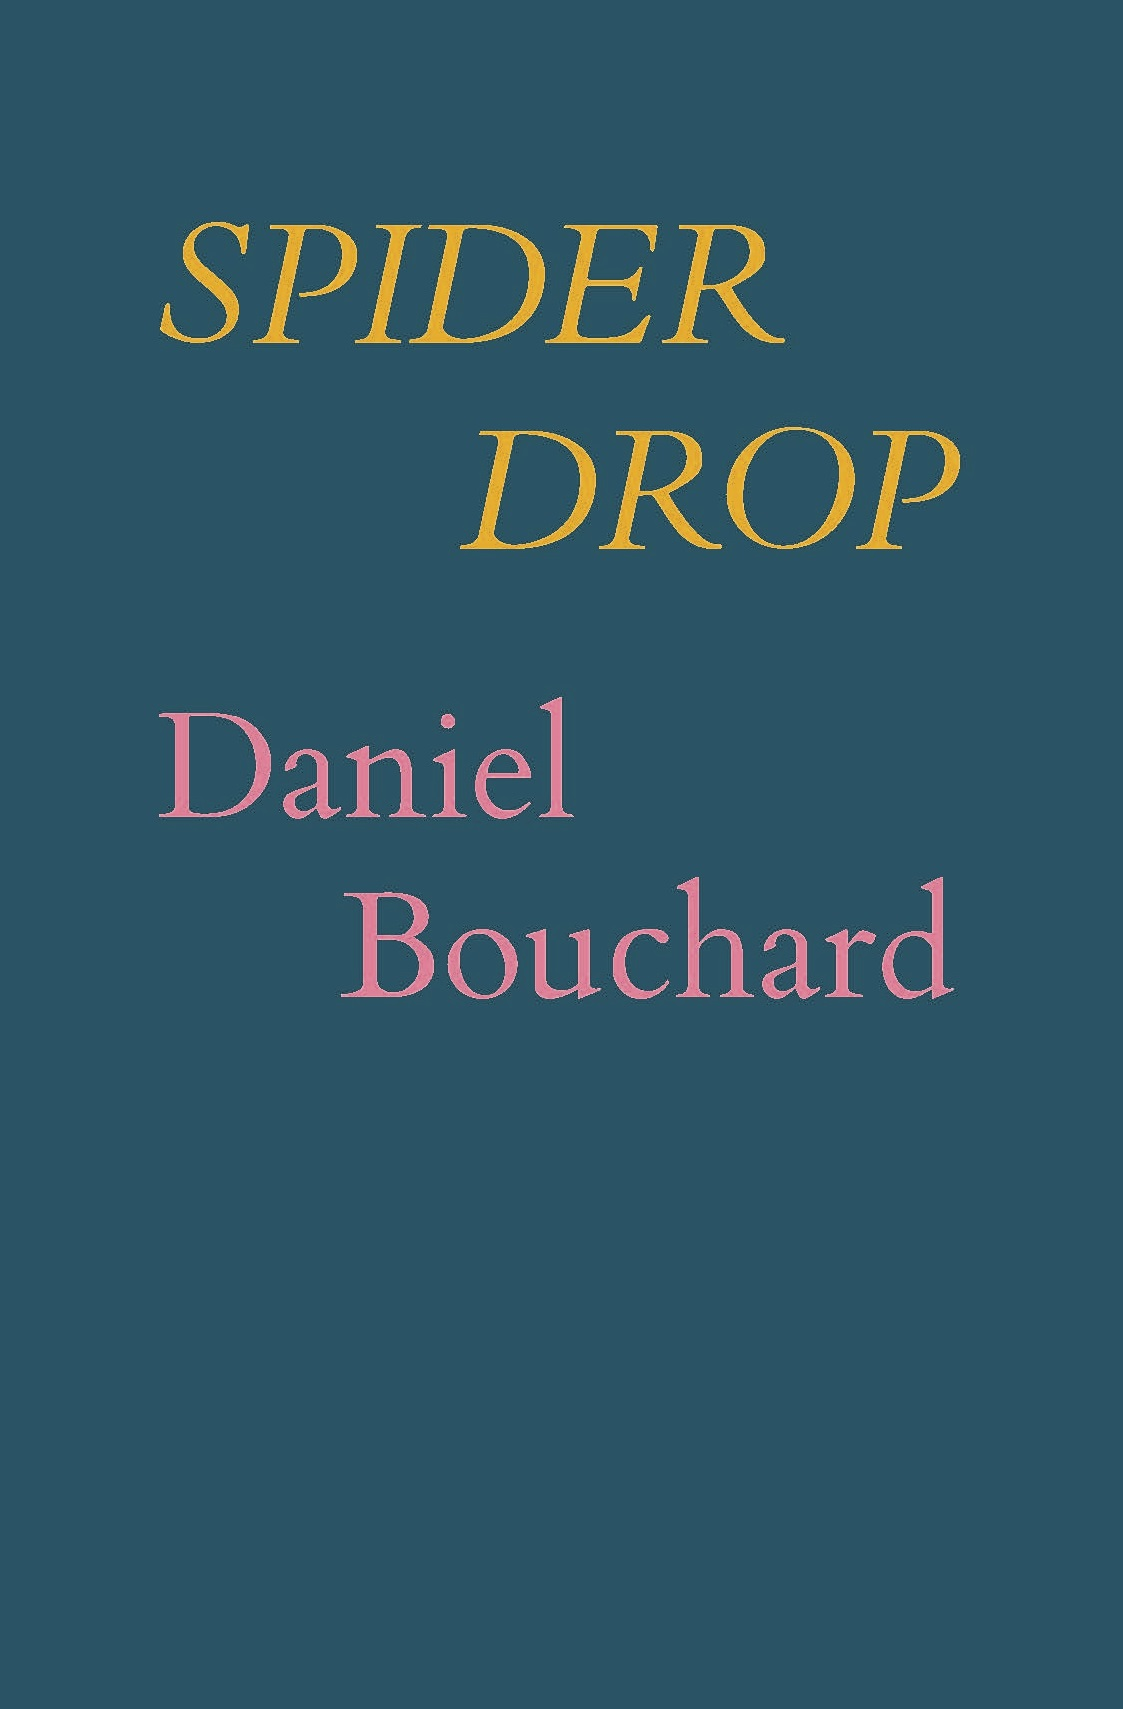 Spider Drop cover